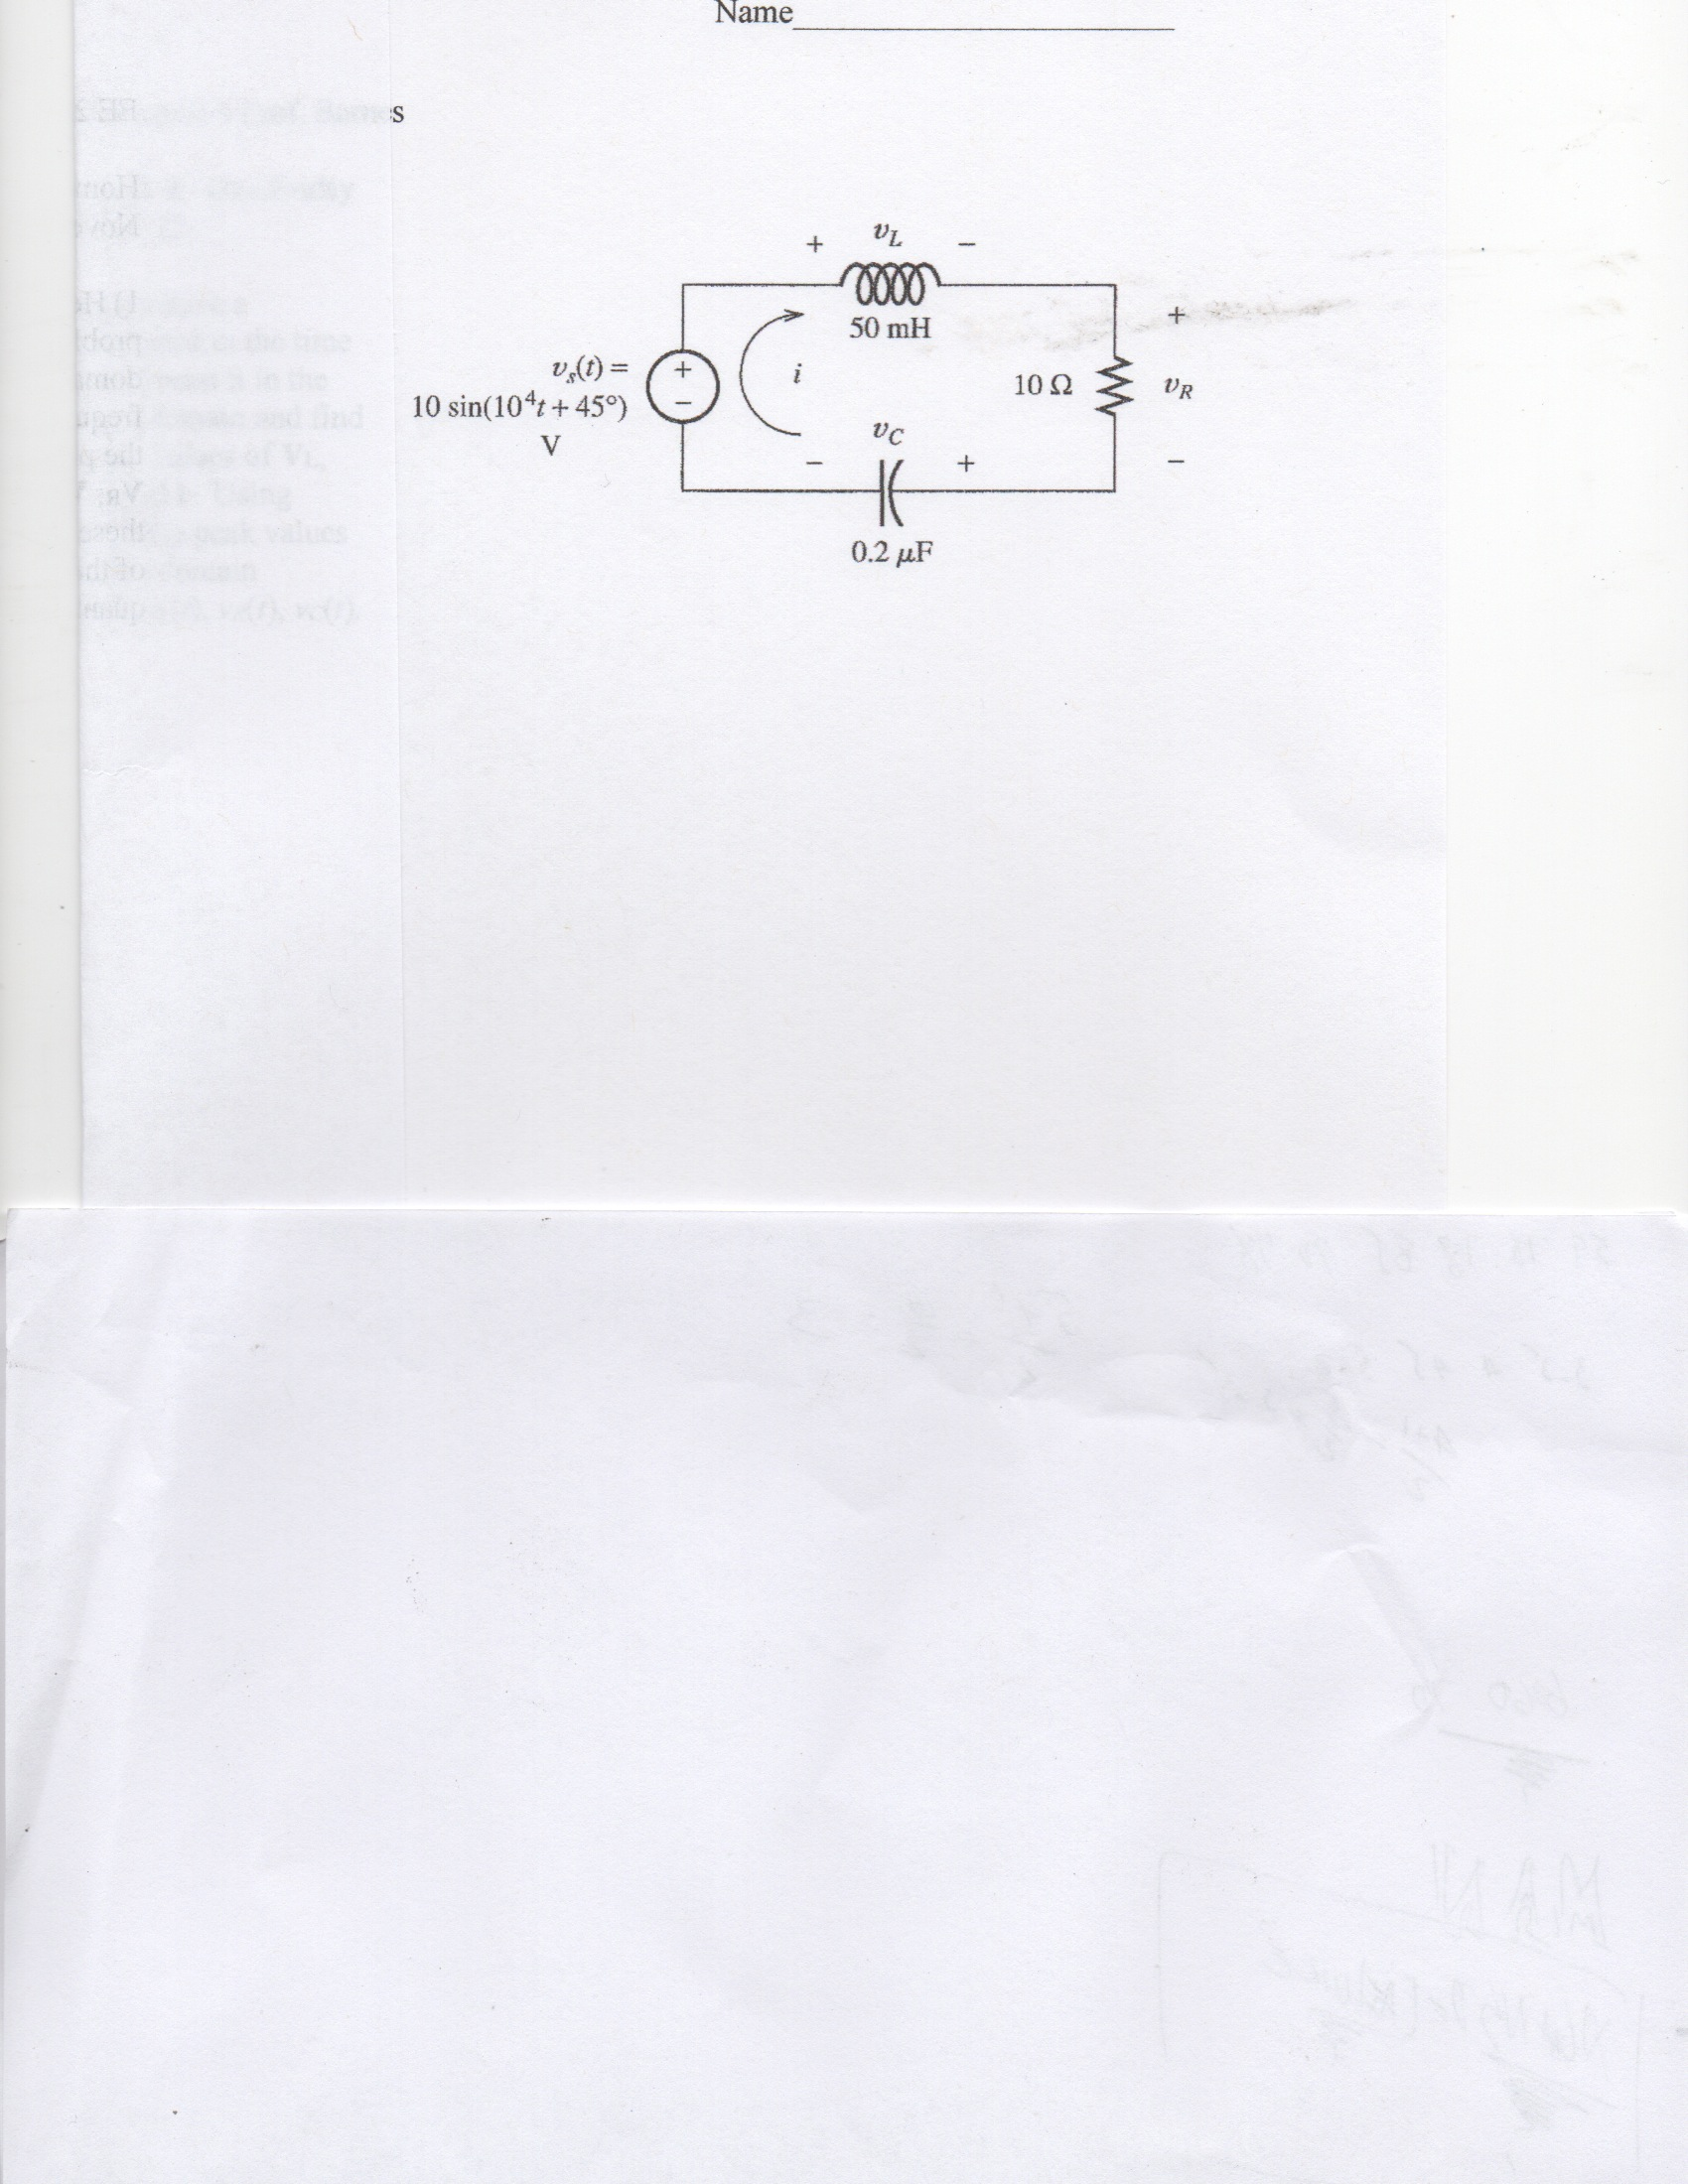 Draw Phasor Diagram Online Electrical Engineering Archive